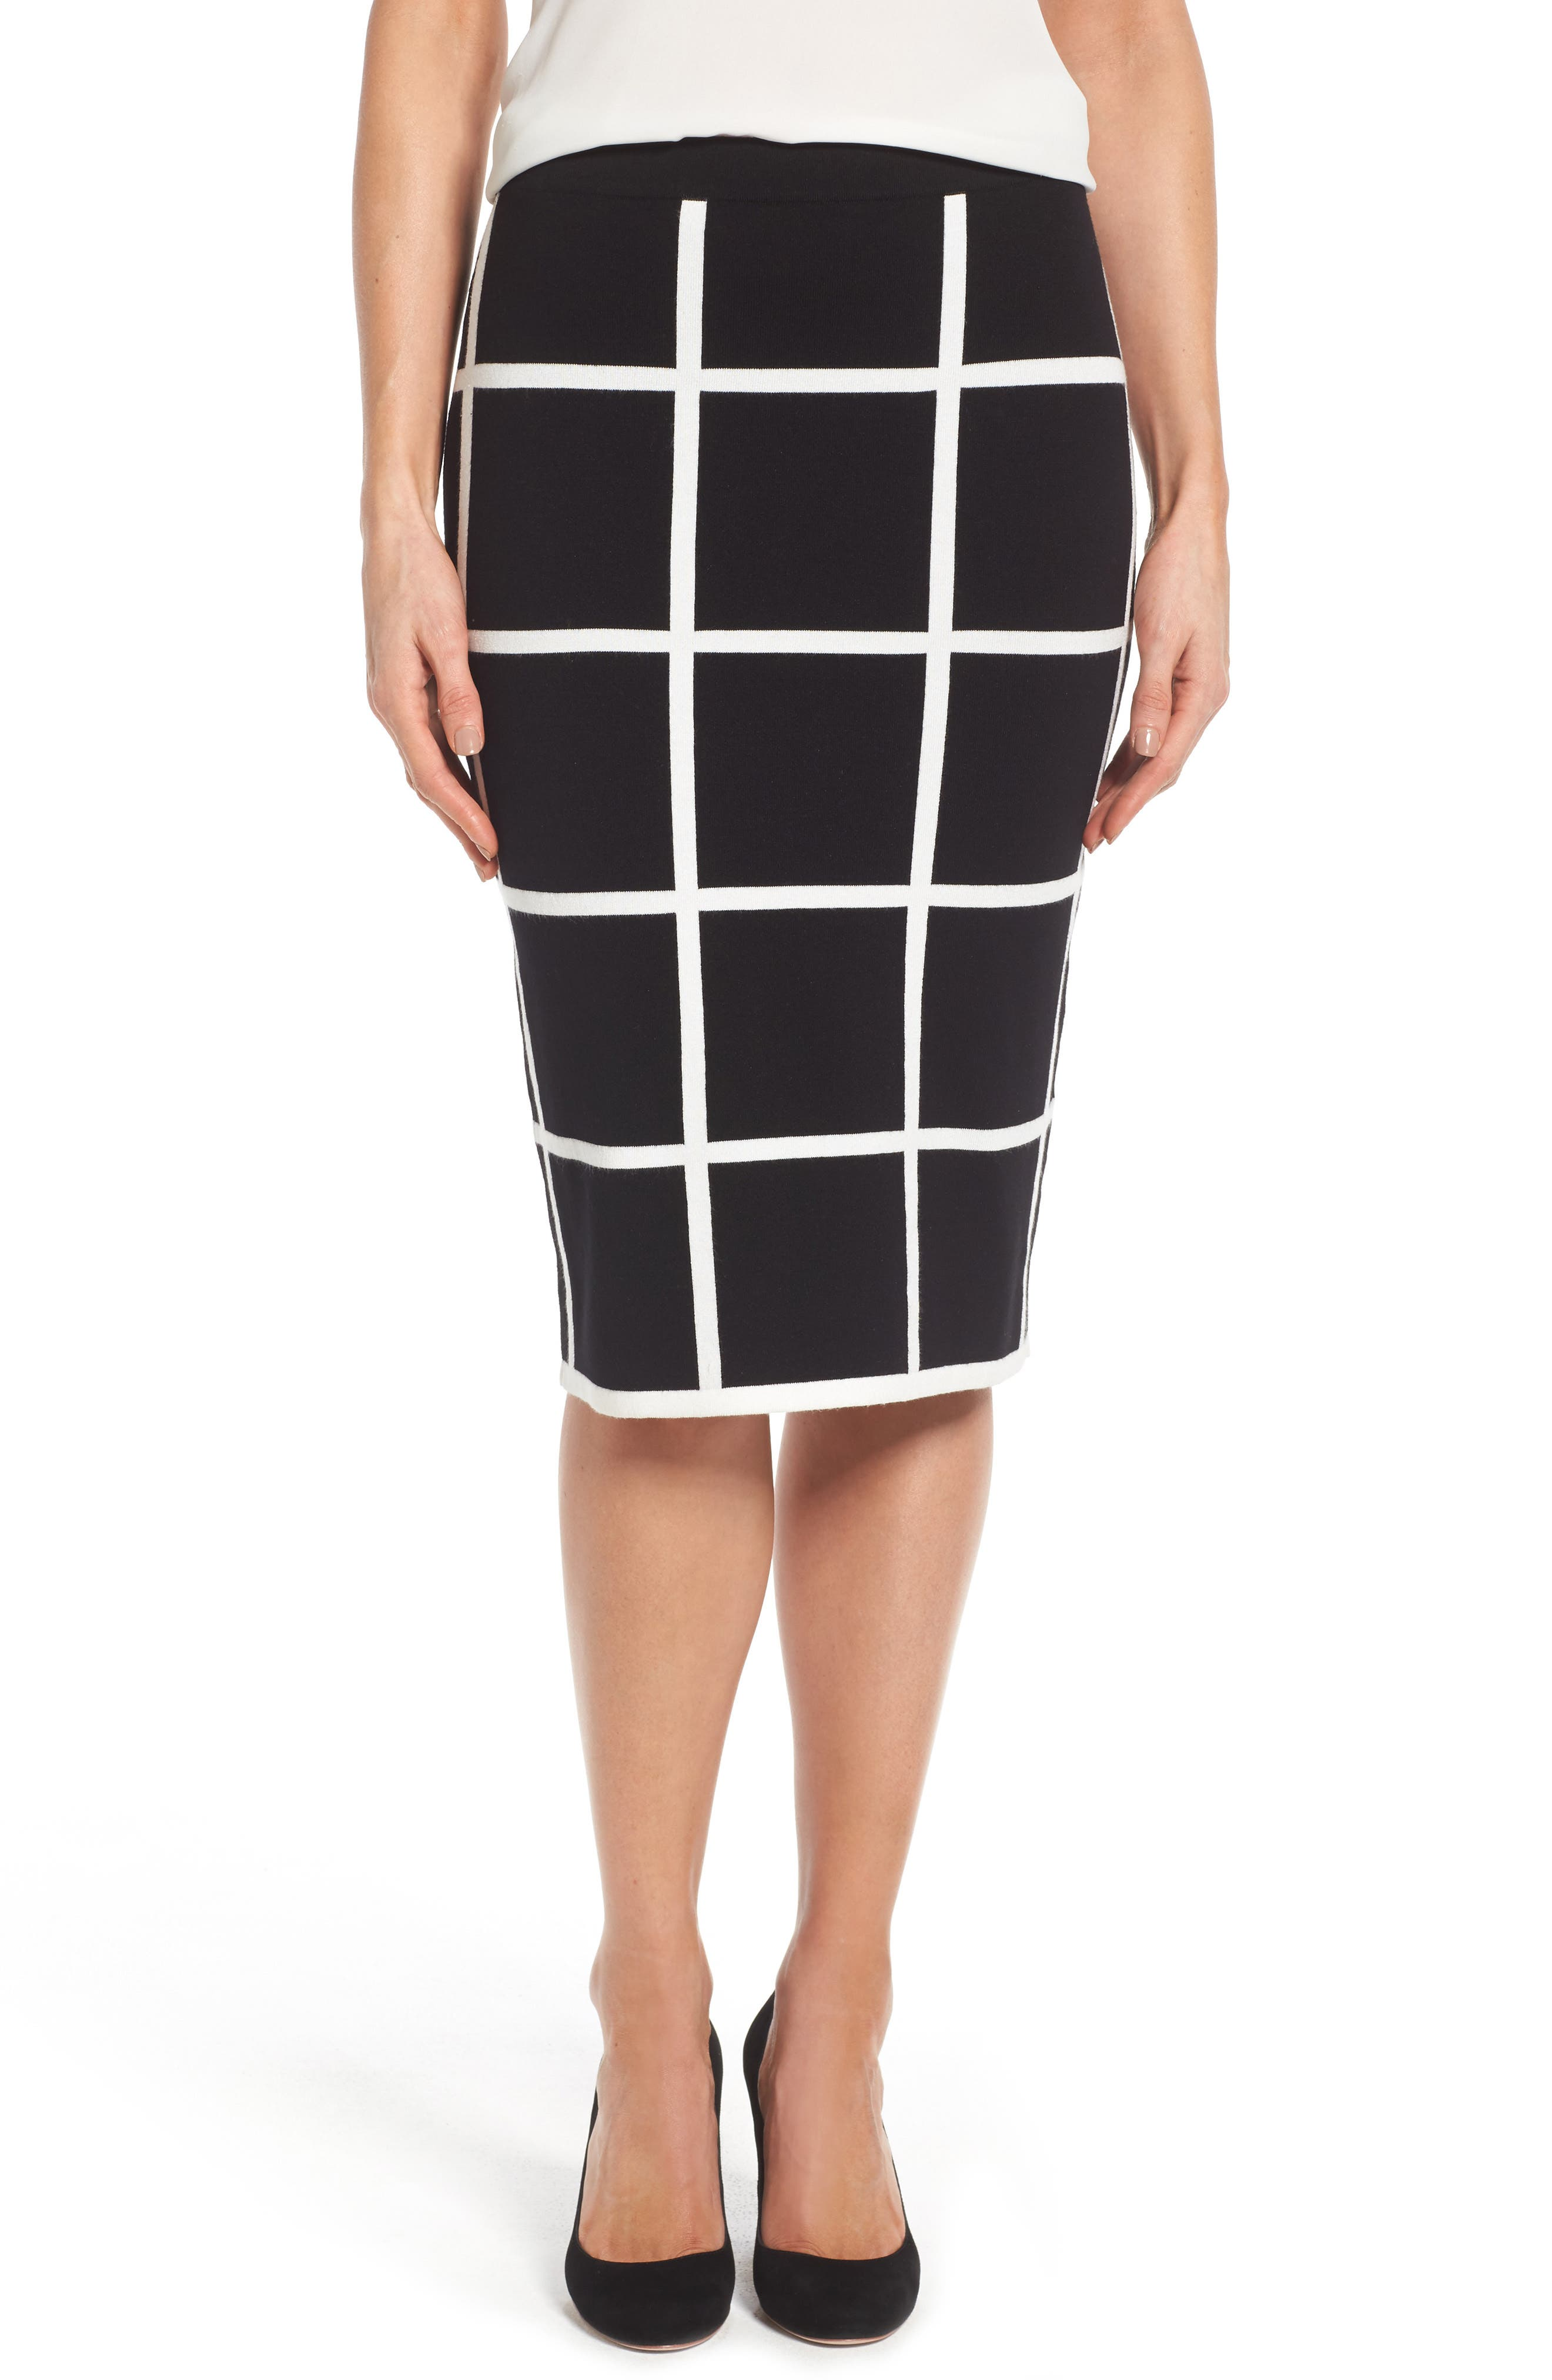 VINCE CAMUTO, Windowpane Sweater Knit Skirt, Main thumbnail 1, color, 006